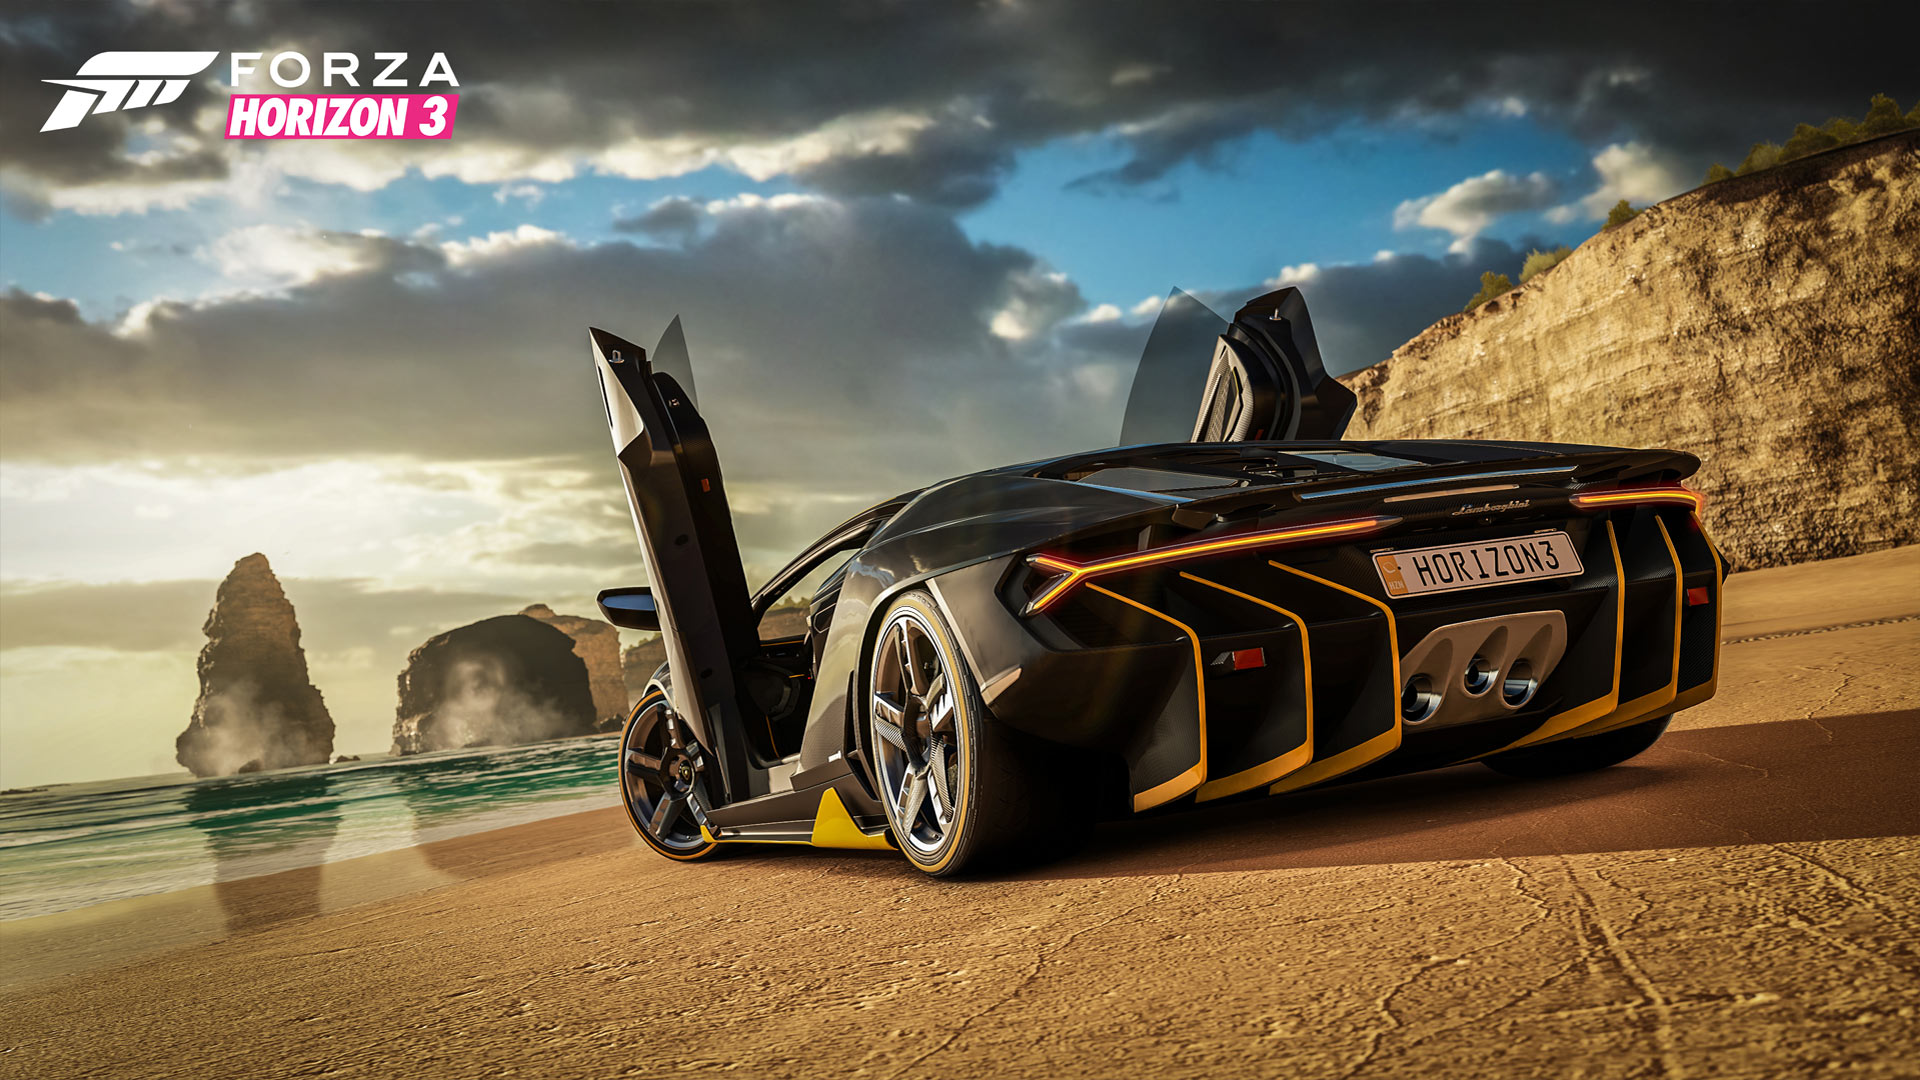 Xbox One Holiday Gift Guide 2017 Forza Horizon 3